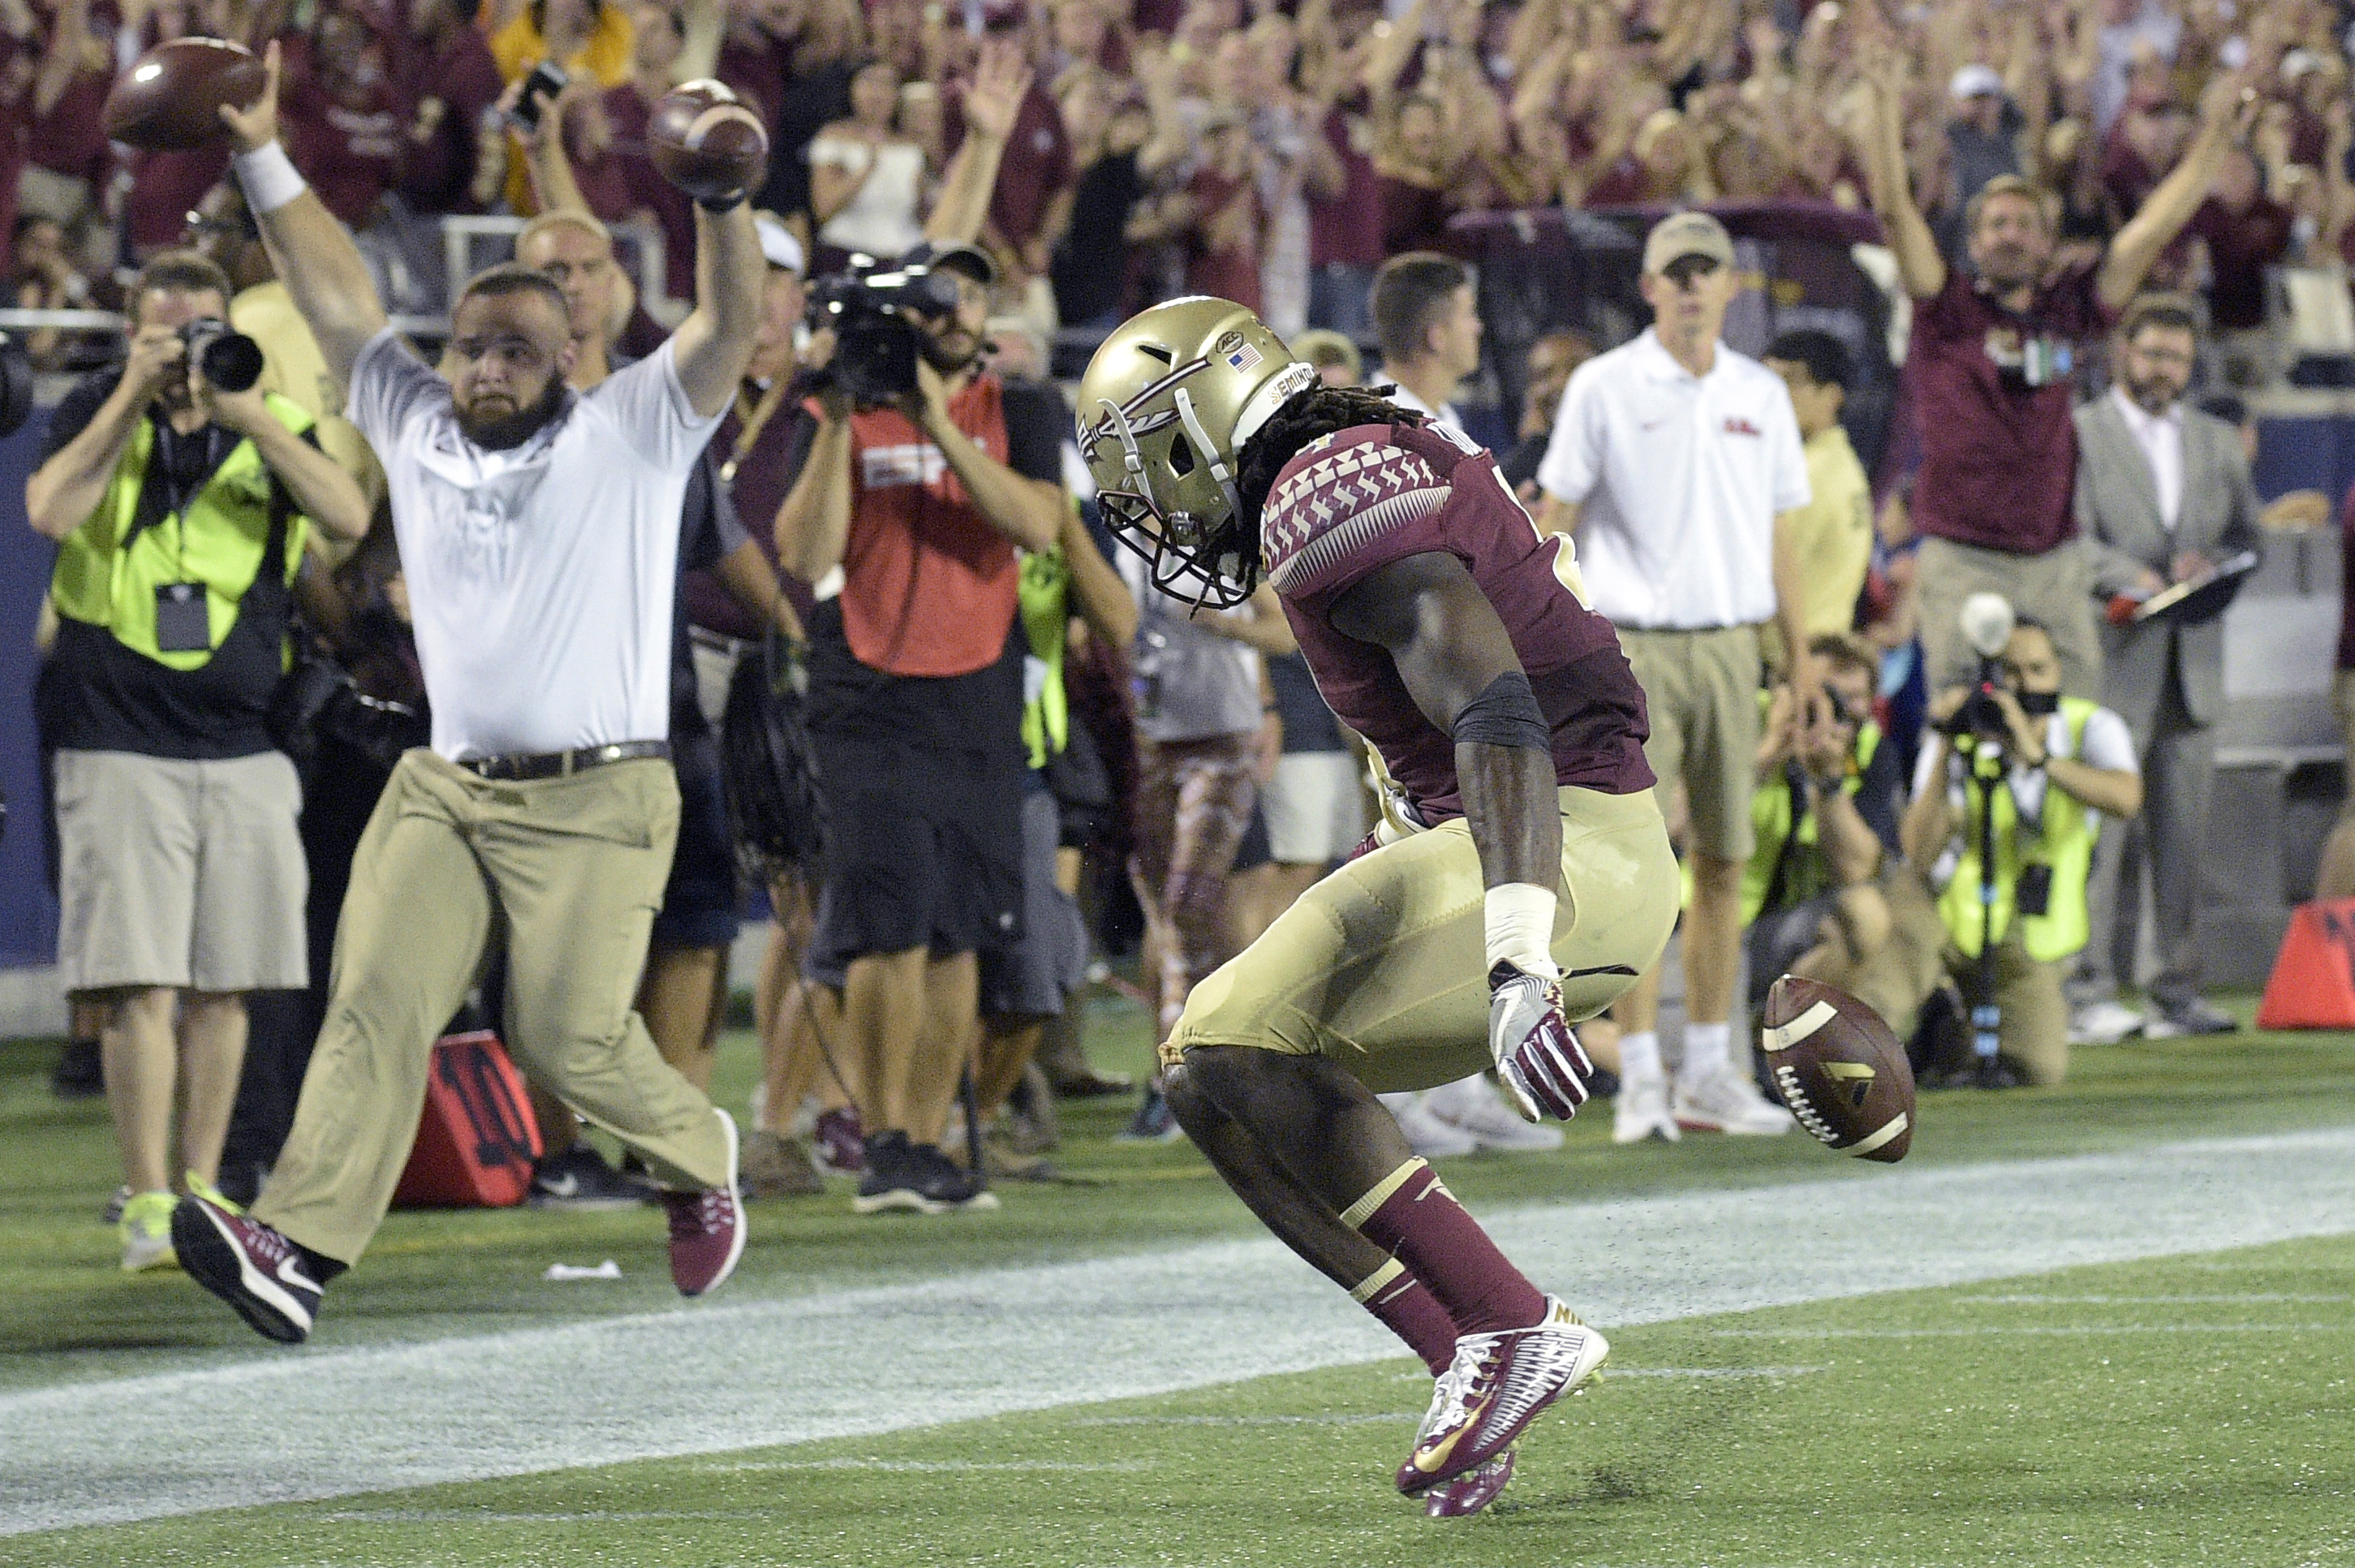 FILE - In this Monday, Sept. 5, 2016, file photo, Florida State running back Dalvin Cook fumbles the ball short of the goal line after catching a pass during the first half of an NCAA college football game against Mississippi in Orlando, Fla. The ball wen